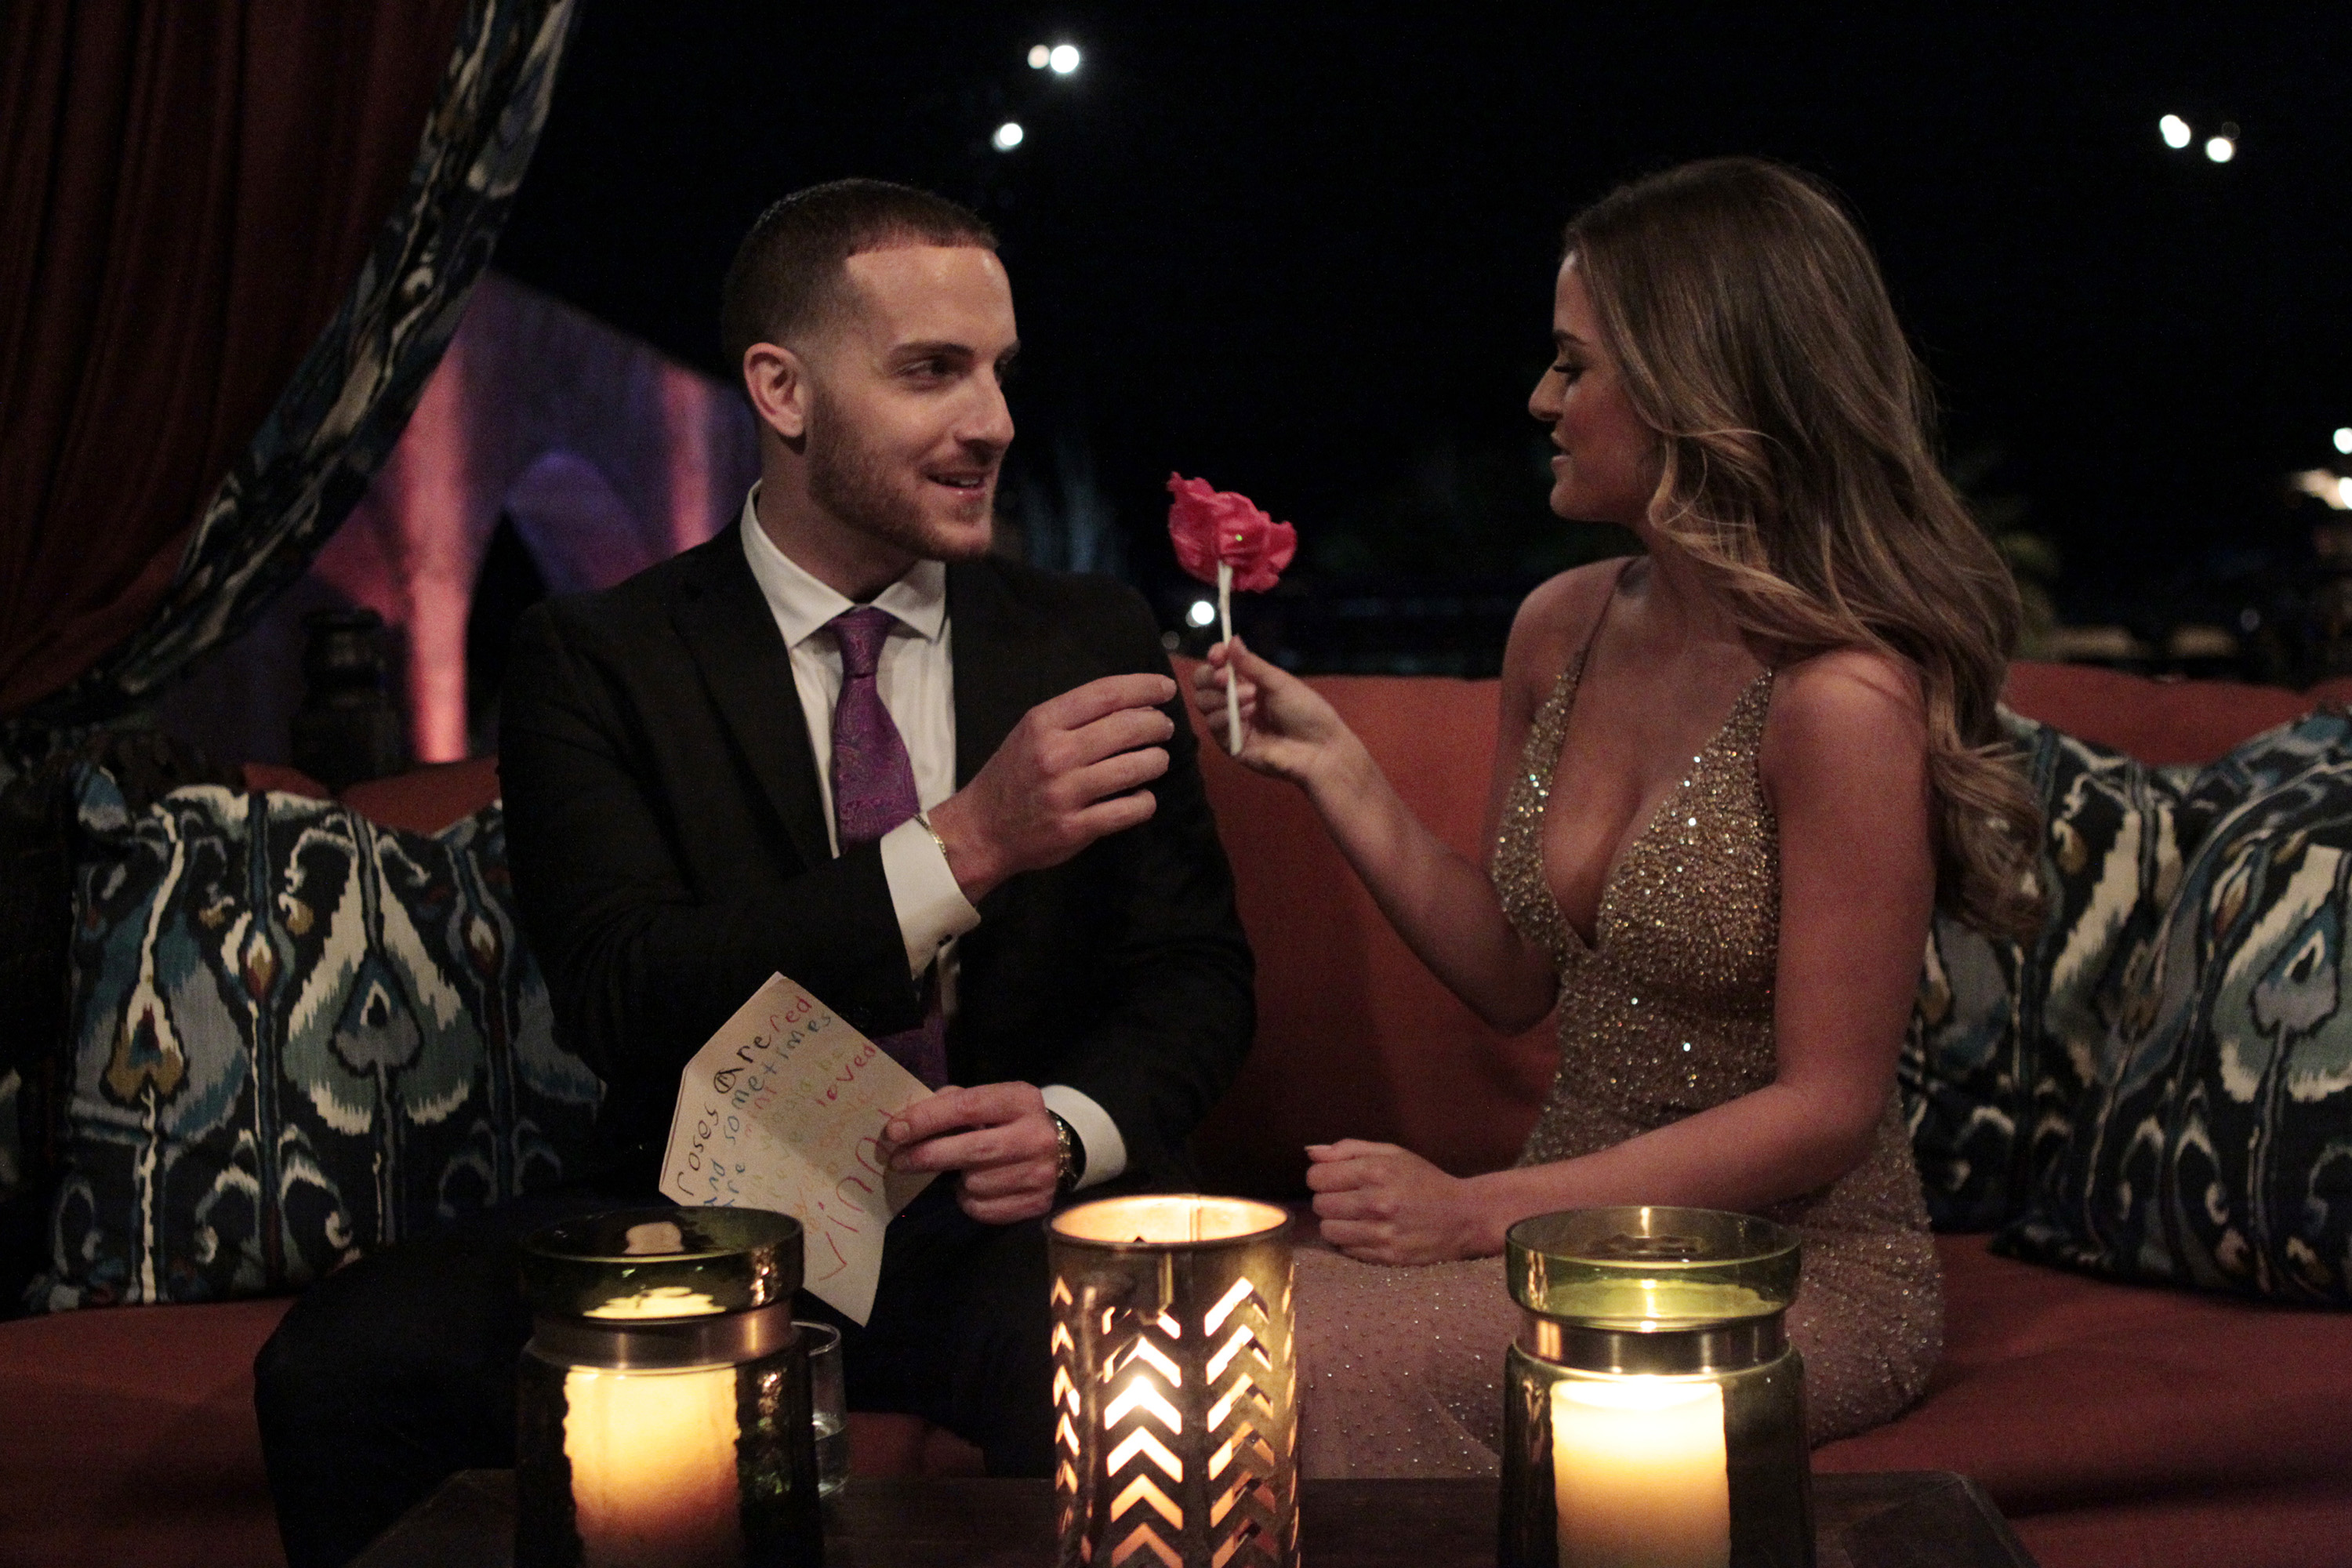 THE BACHELORETTE -  1201  - Successful and stunning real estate developer JoJo Fletcher, 25, gets a second chance at her happily-ever-after, choosing from twenty-six handsome bachelors. After being devastated last season by a shocking rejection from Bachelor Ben Higgins, who confessed his love to both her and Lauren Bushnell, the Texan beauty is ready to leave that heartbreak behind and write her very own love story as the Bachelorette. JoJo will embark on her own journey to find her soul mate when she stars in the 12th edition of ABC's hit romance reality series,  The Bachelorette,  which will premiere at a special time MONDAY, MAY 23 (9:01-11:00 p.m. EDT), on the ABC Television Network. (ABC/Rick Rowell)                             VINCENT, JOJO FLETCHER